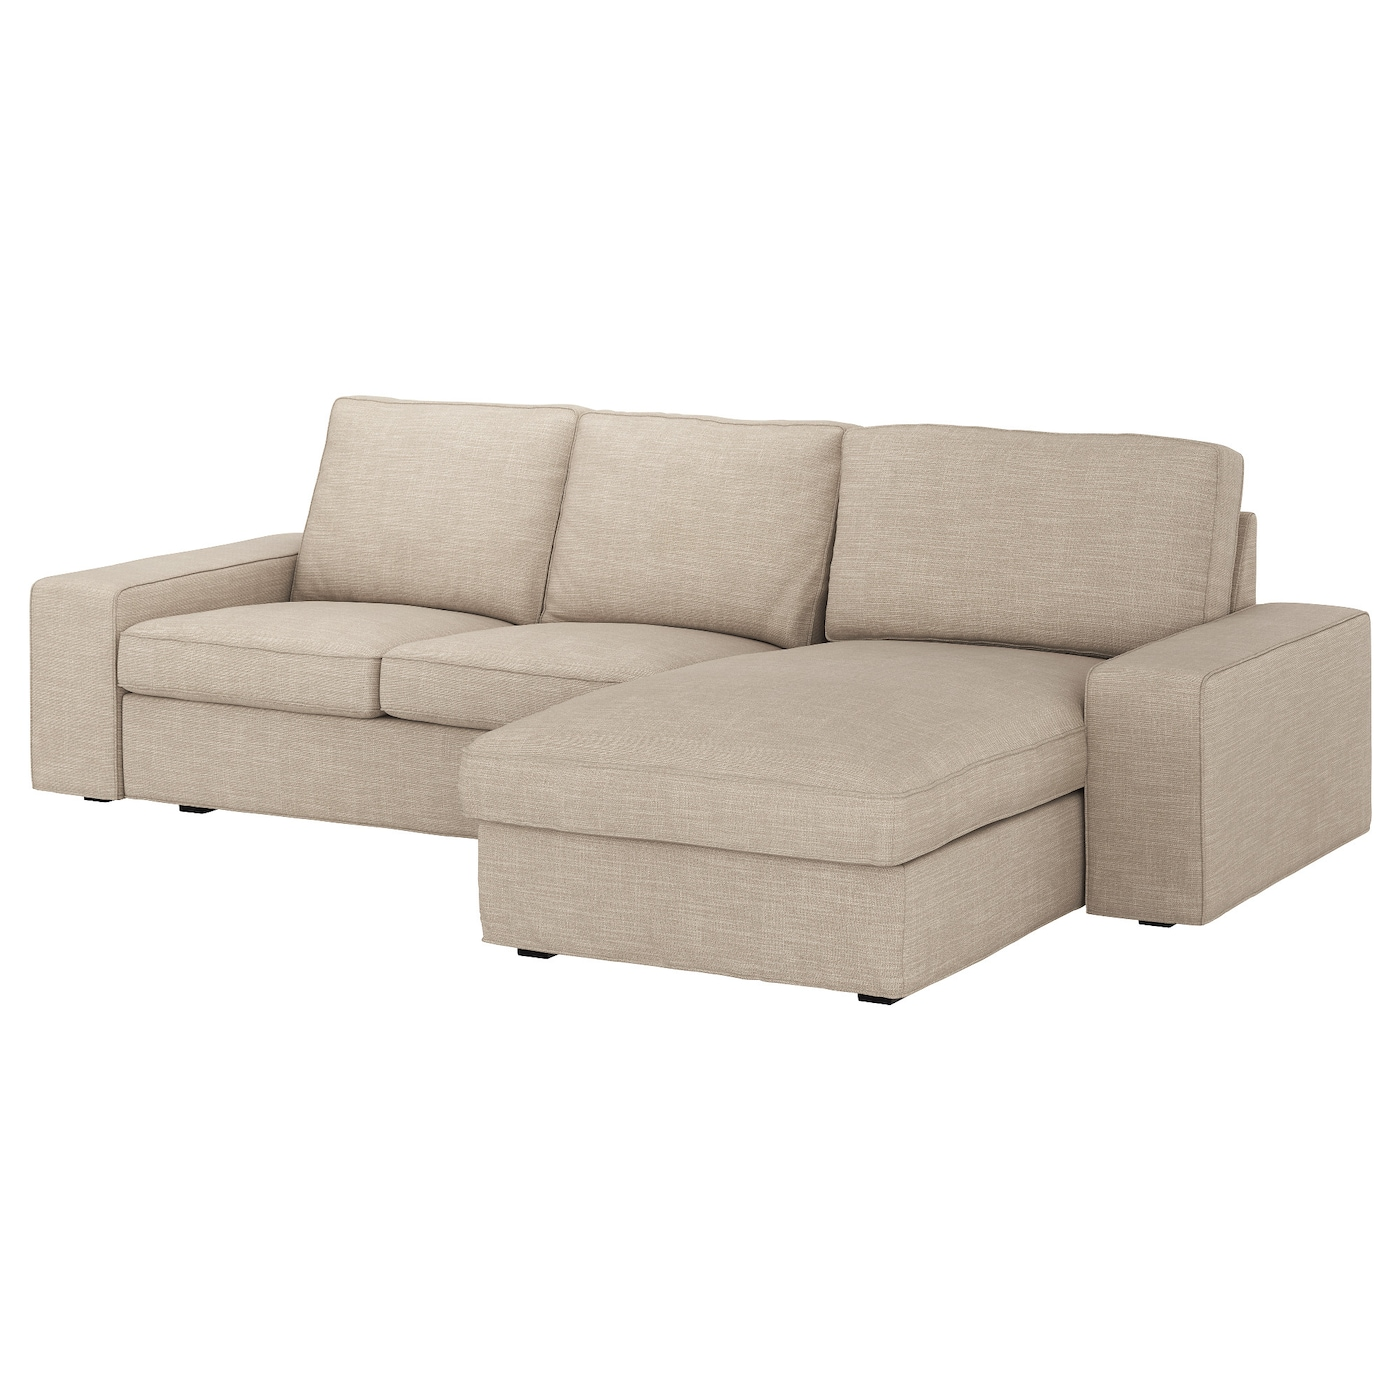 Kivik 3 seat sofa with chaise longue hillared beige ikea for Chaise longue cavallino